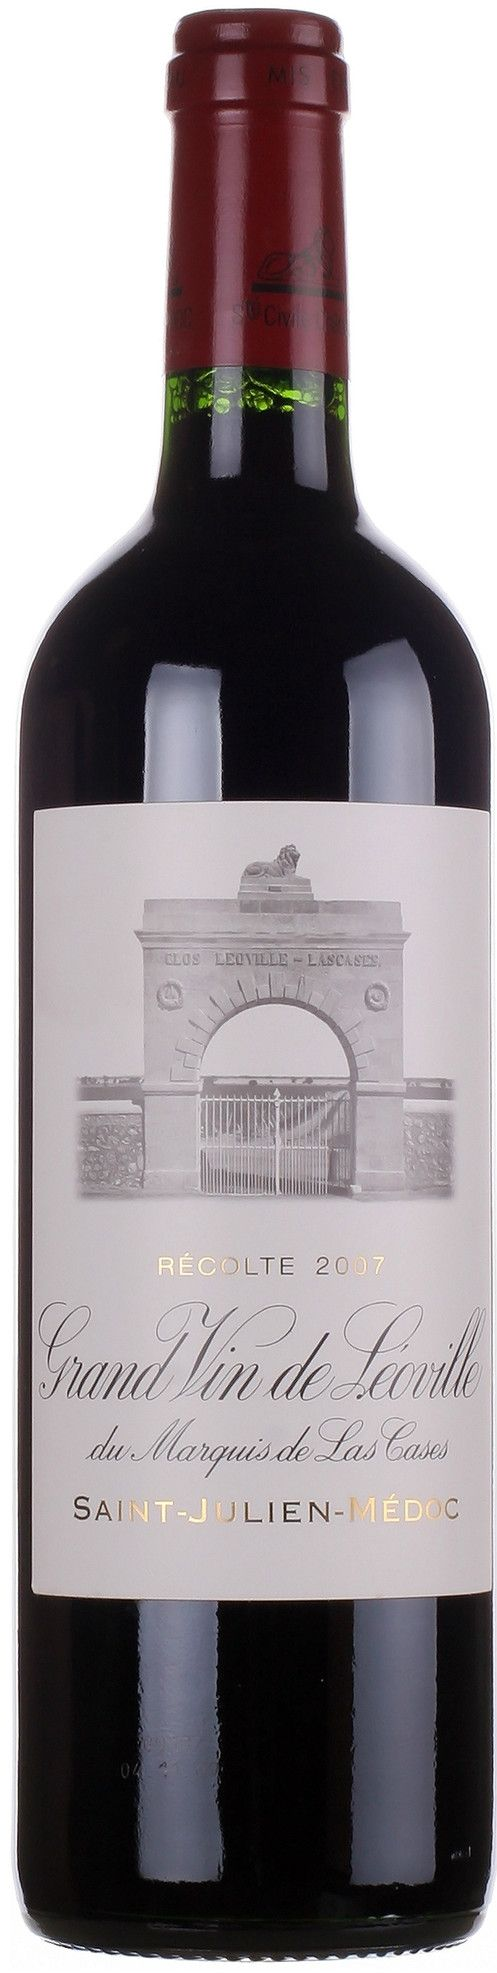 Chateau Leoville Las Cases, 2007